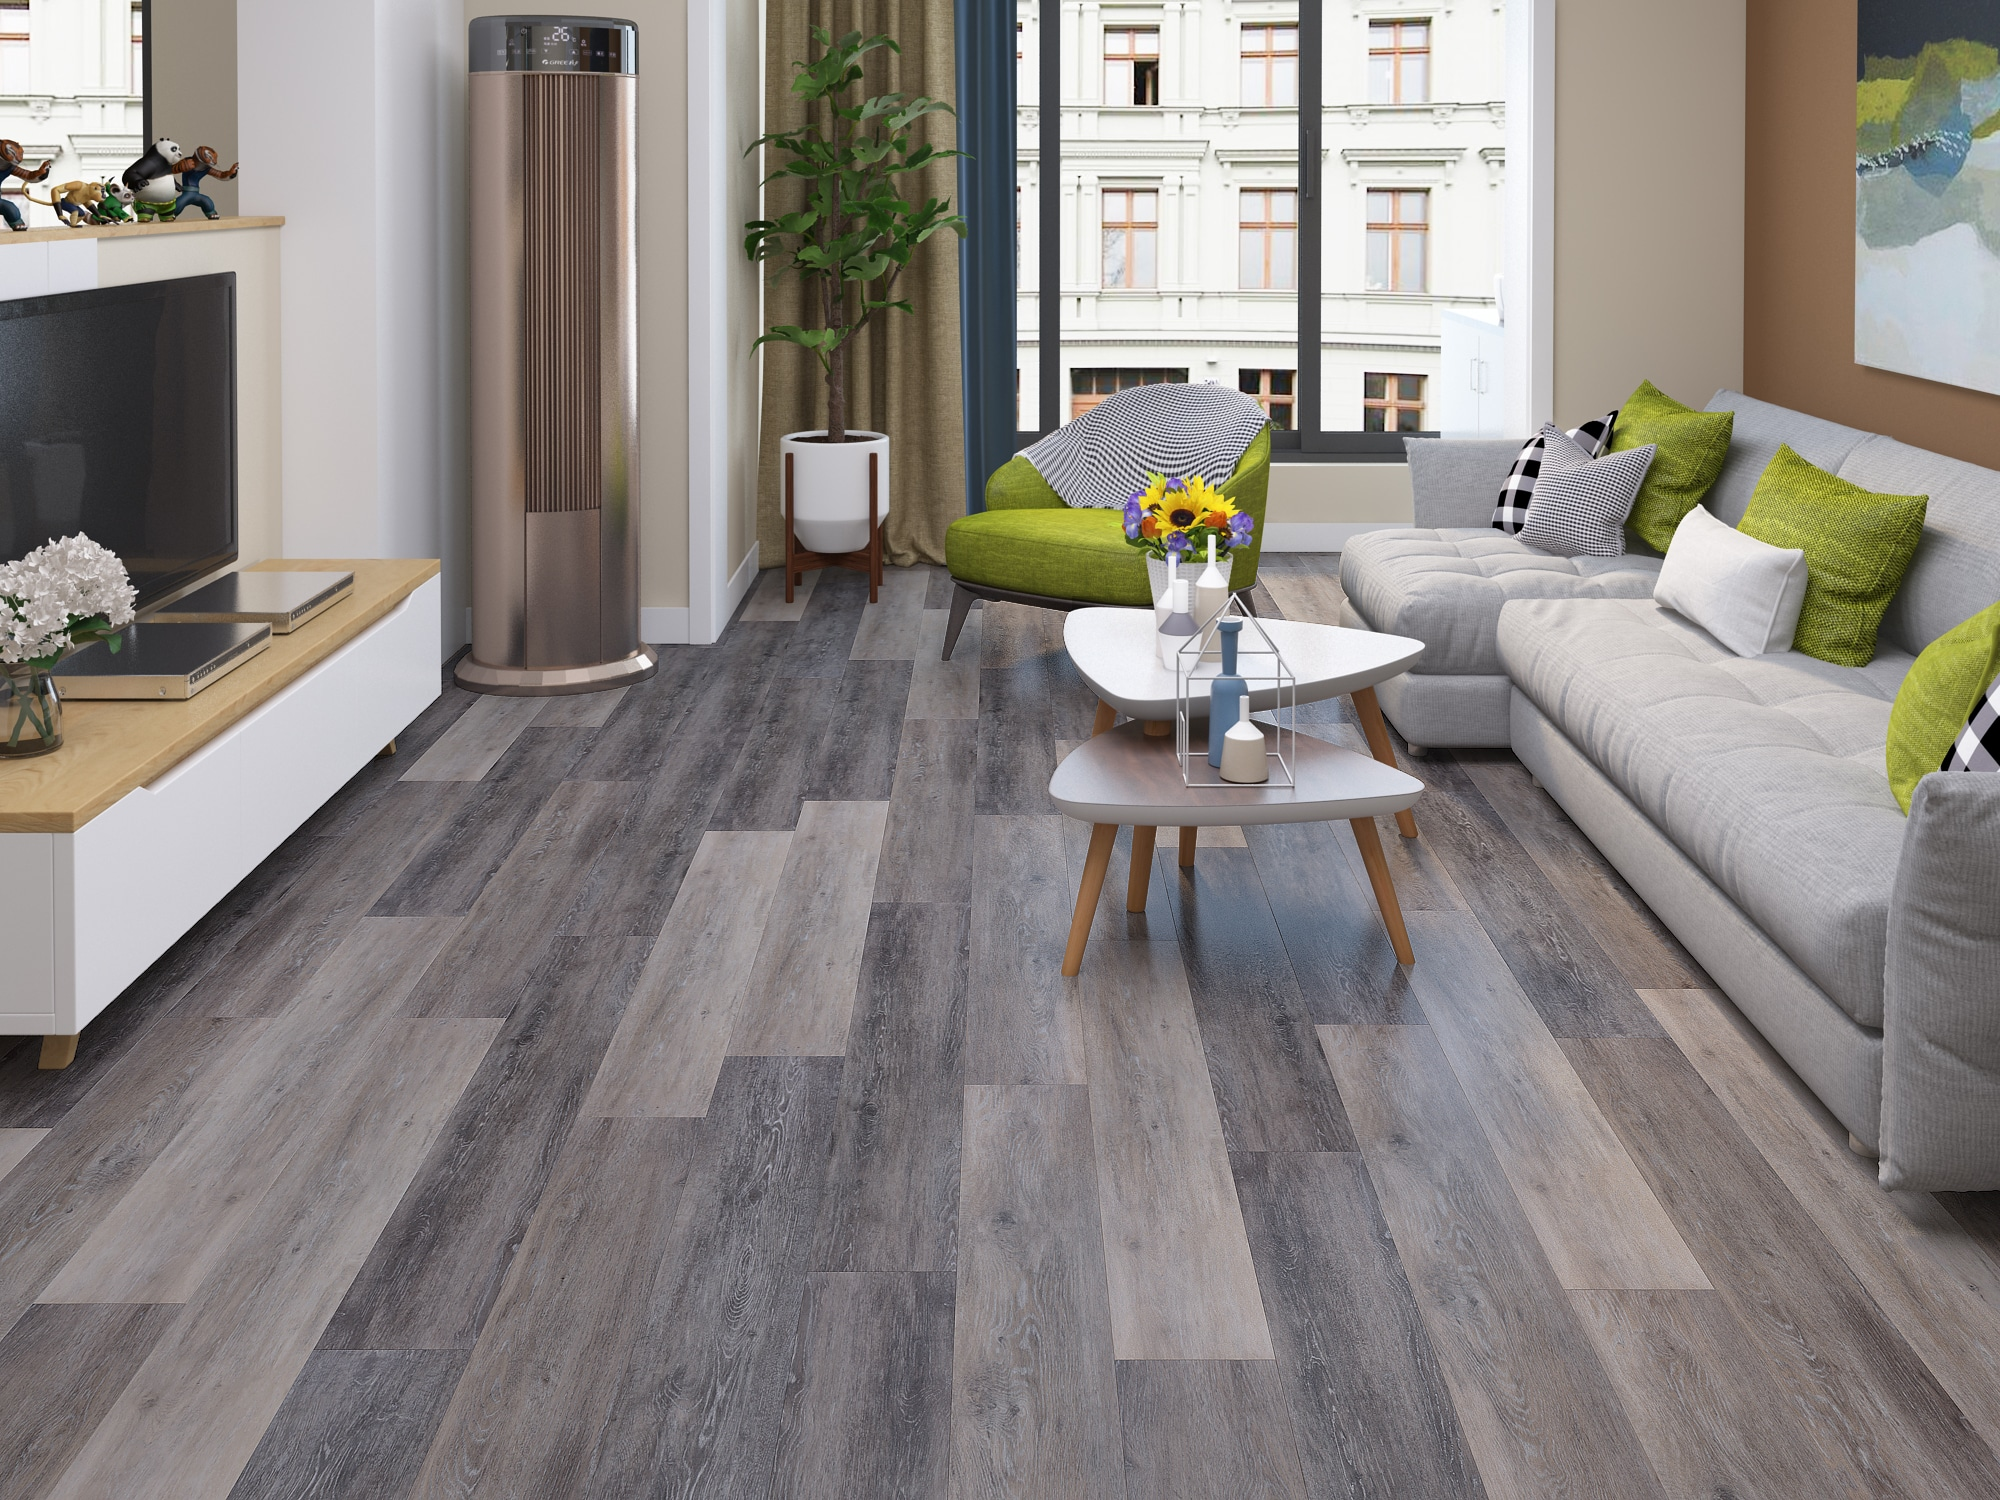 Parkay Xpr Victorian Ash Architect Collection Masters